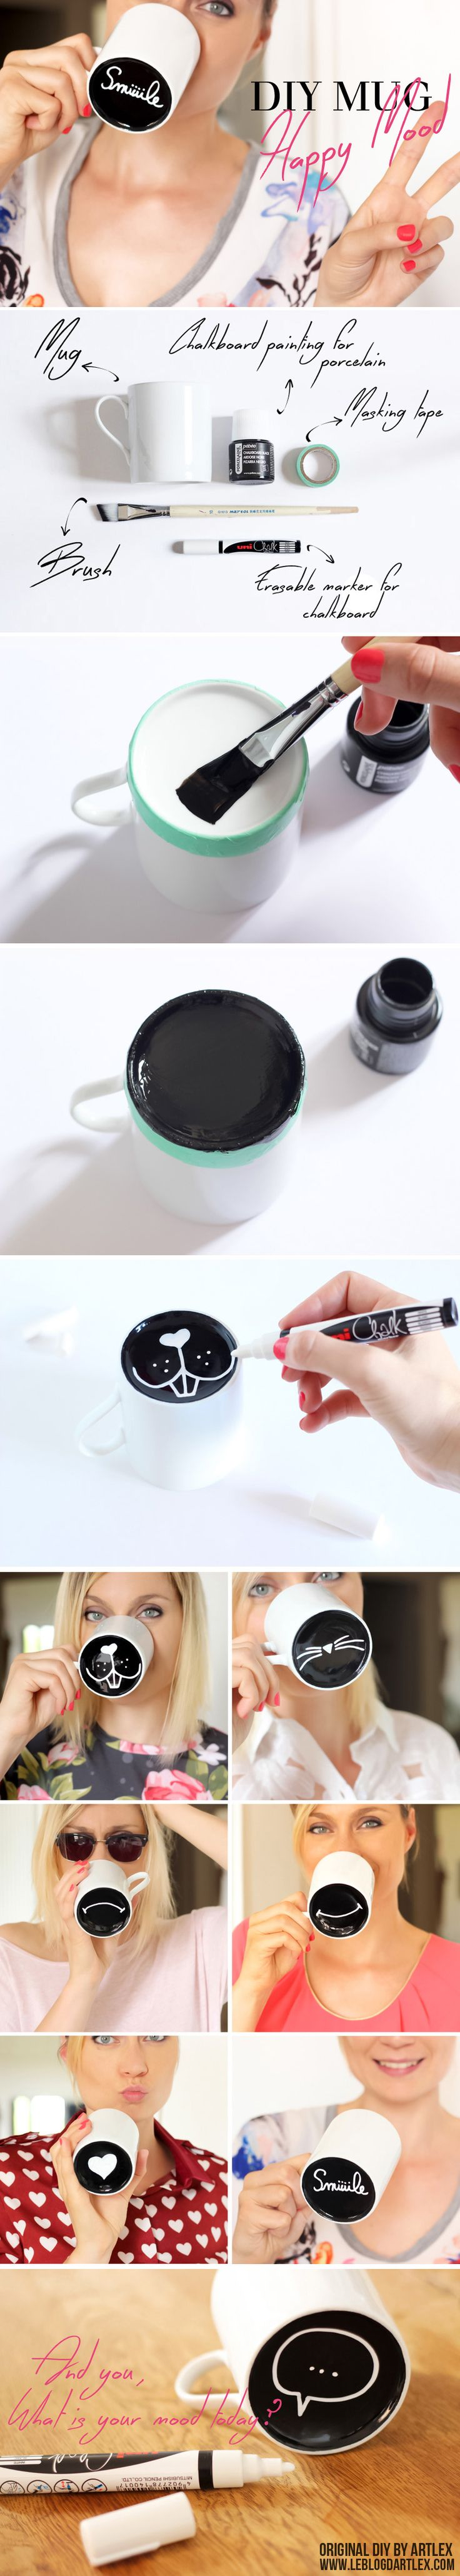 DIY Chalkboard Painted Mug